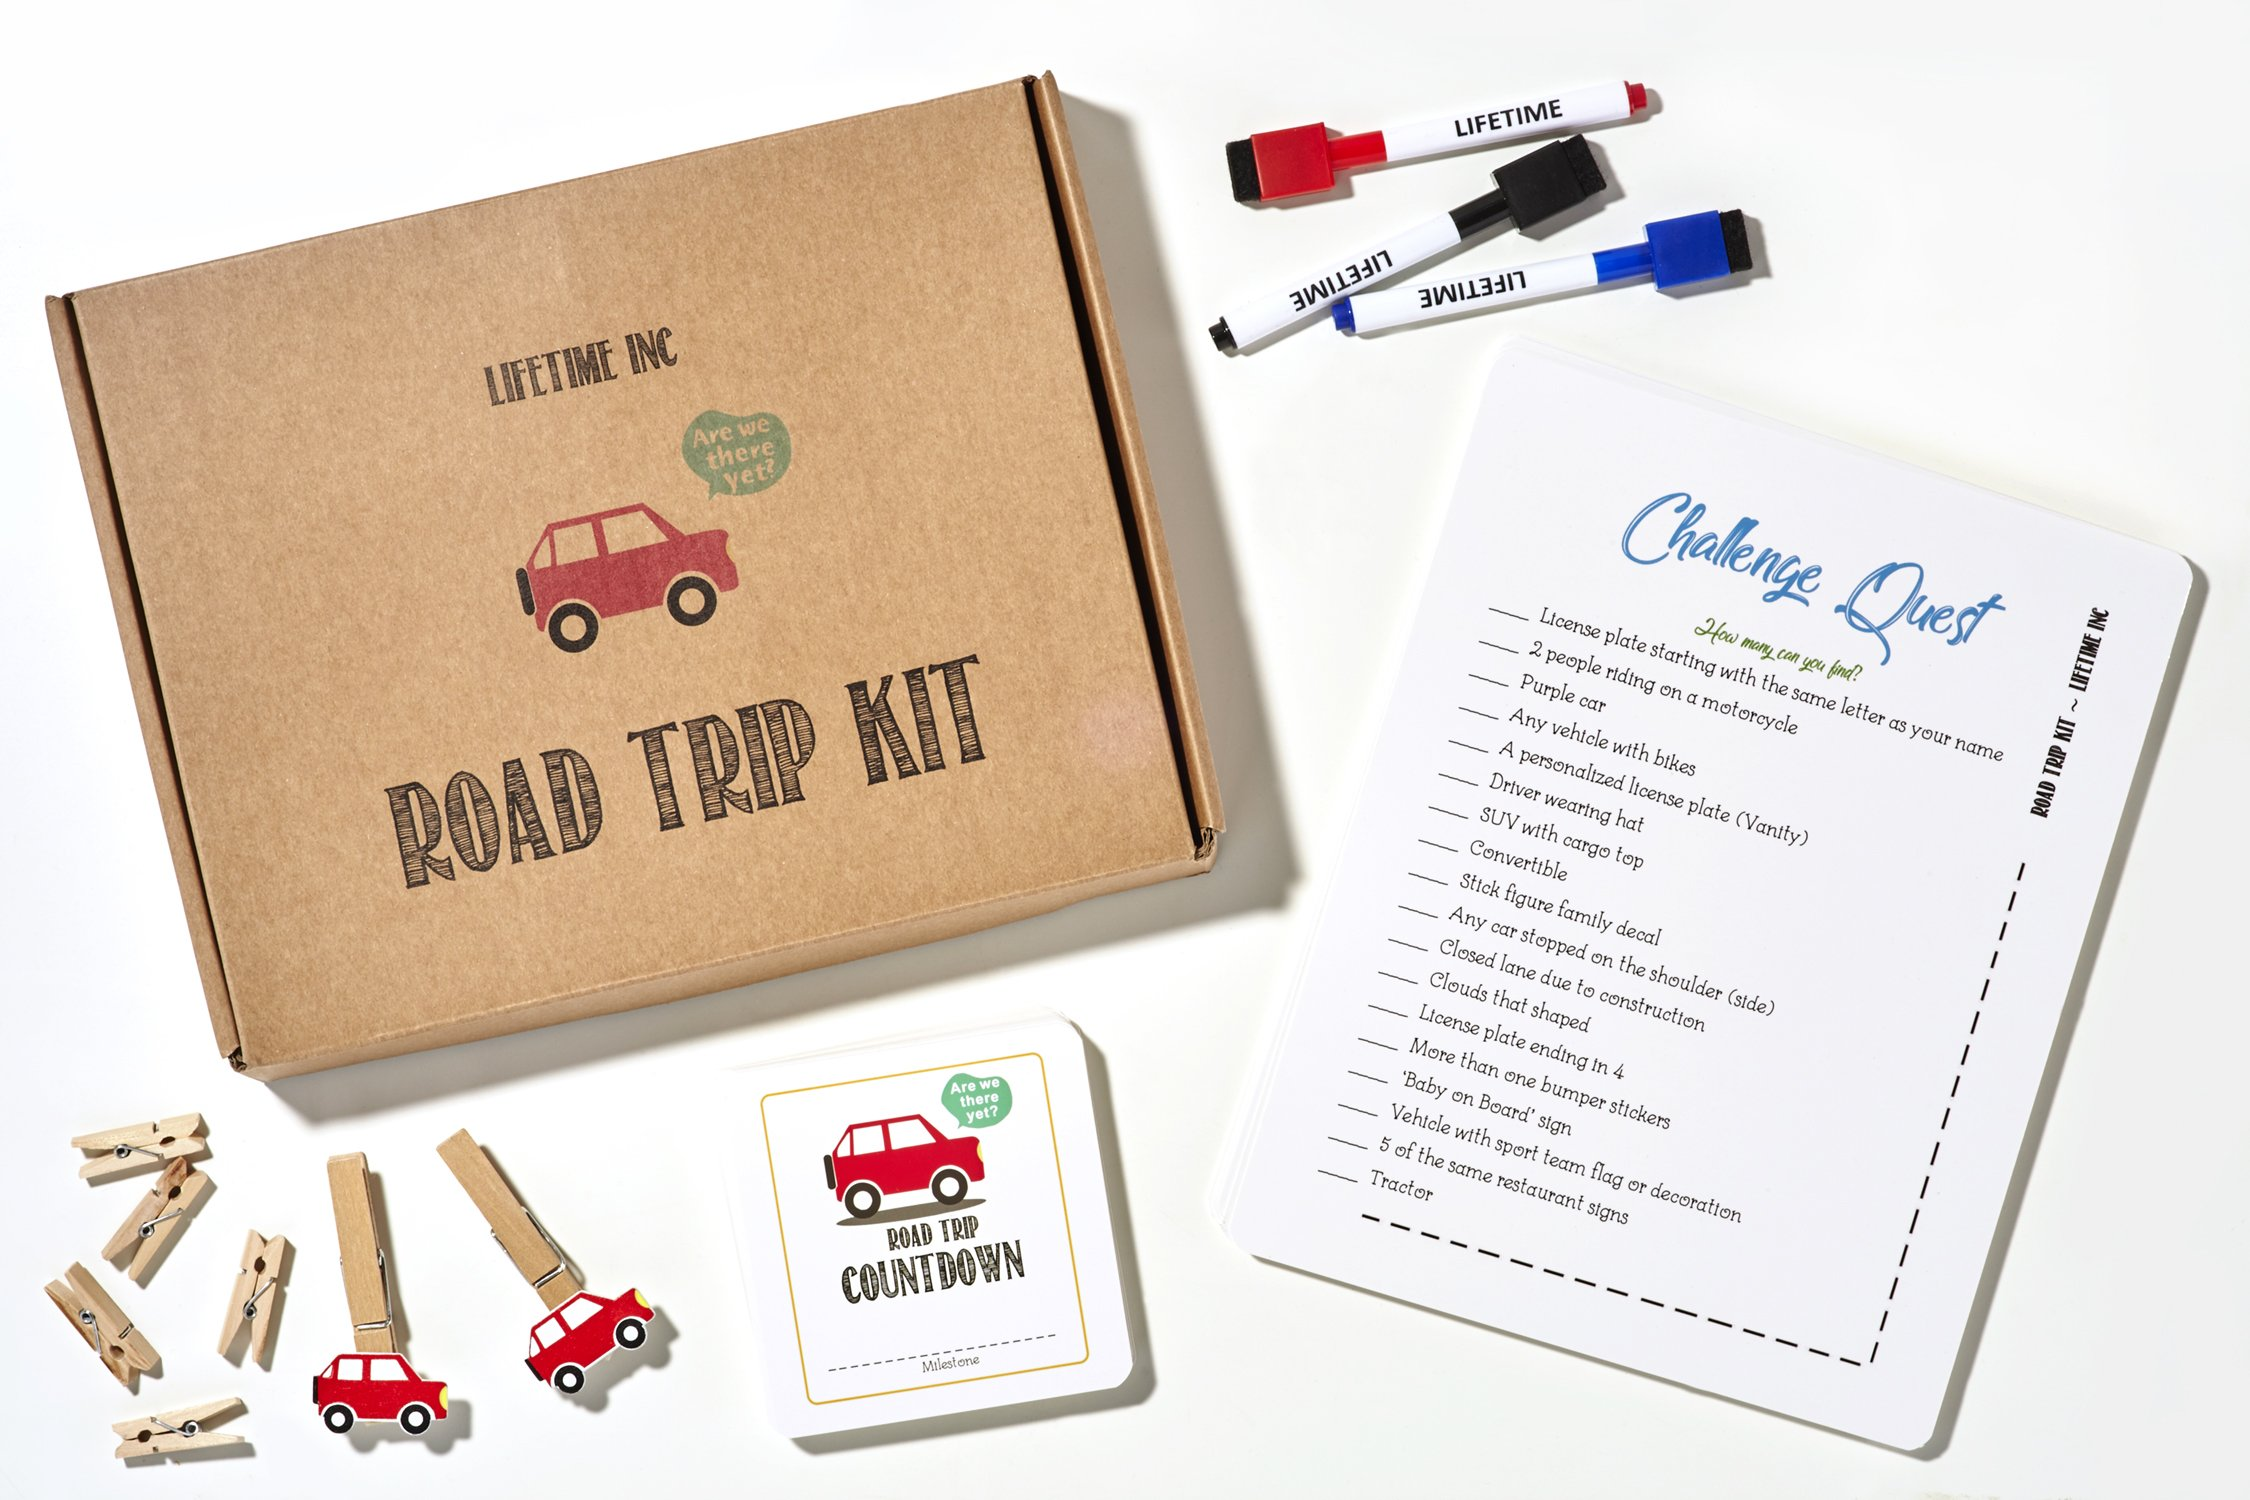 Road Trip Travel Games Activities- Dry Erase Countdown Cards Map Reusable Markers Car Games On the Go For Family Kids Teen Girls Boys License Plate Hangman Tic Tac Toe Dots Battleship Airplane by Lifetime Inc